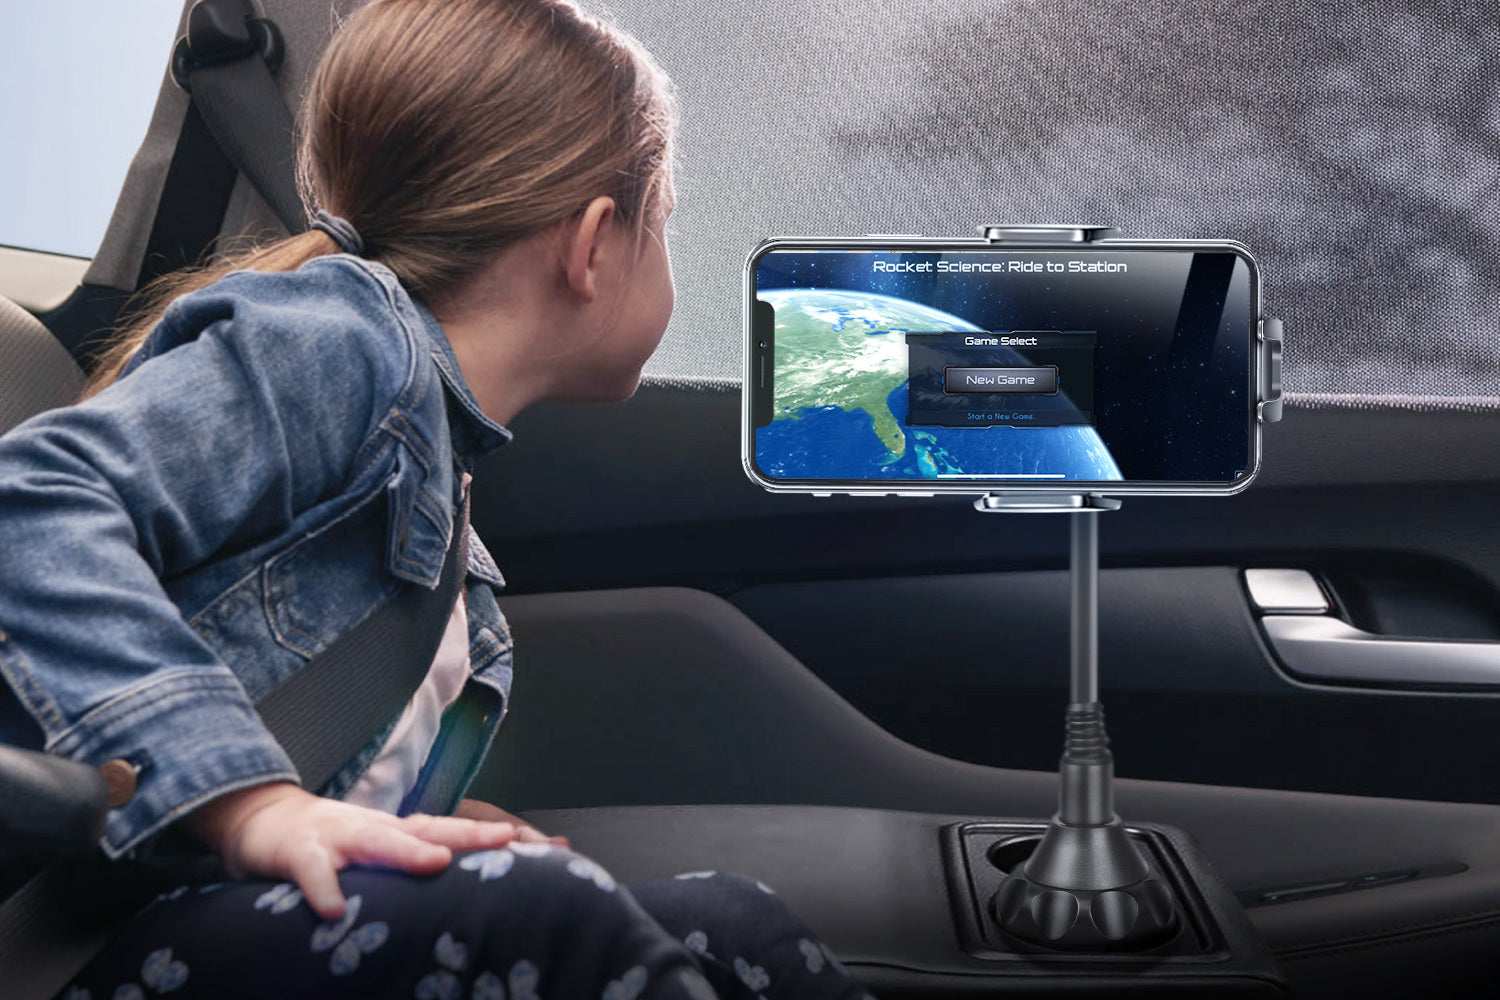 NASA new game in TOPGO Cup Holder Phone Mount